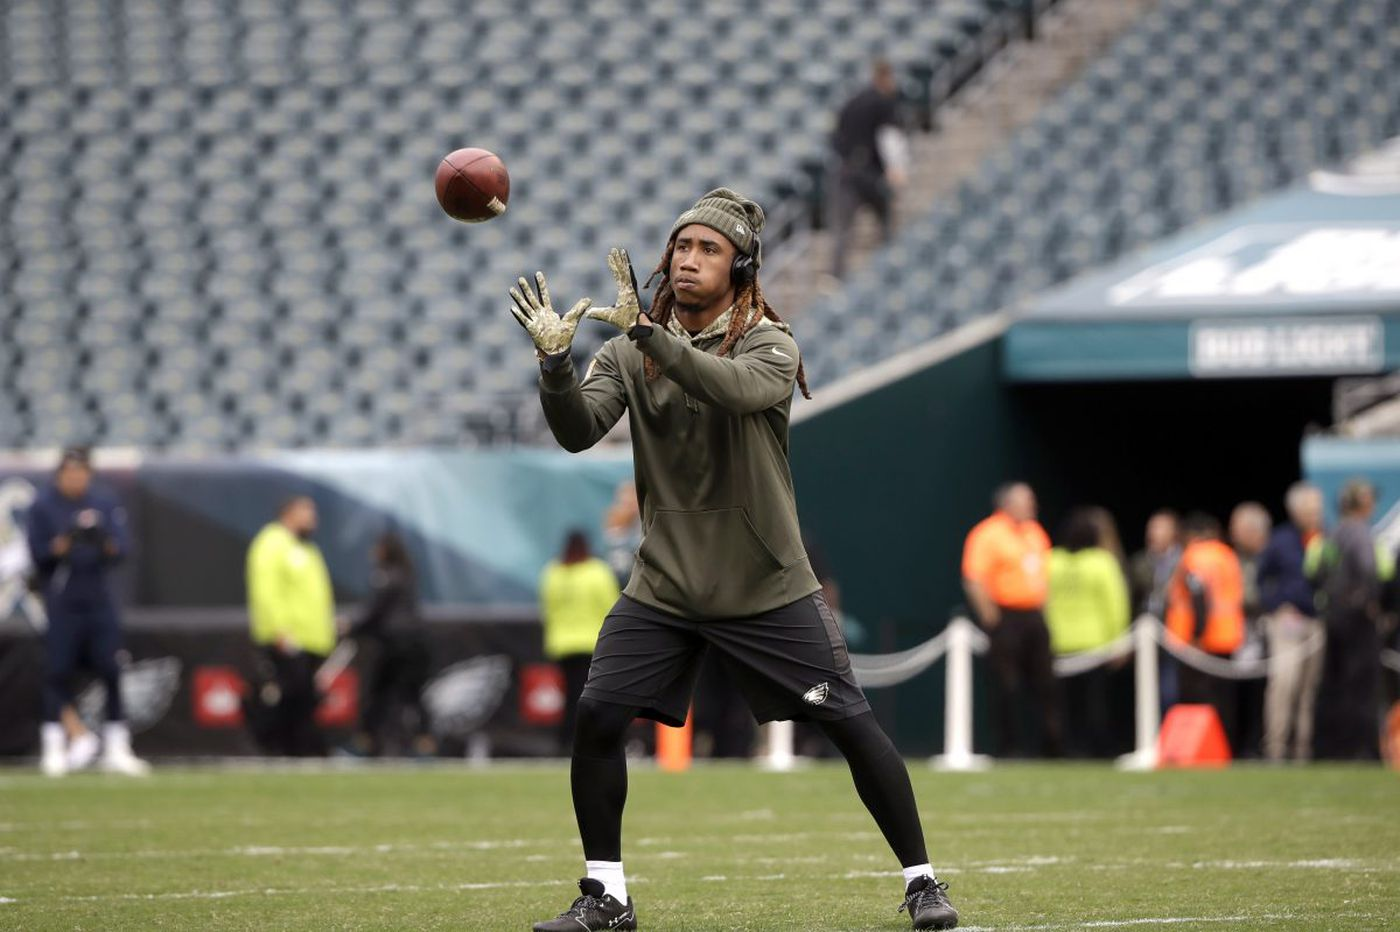 Ronald Darby and Dannell Ellerbe ought to make Eagles' defense better eventually